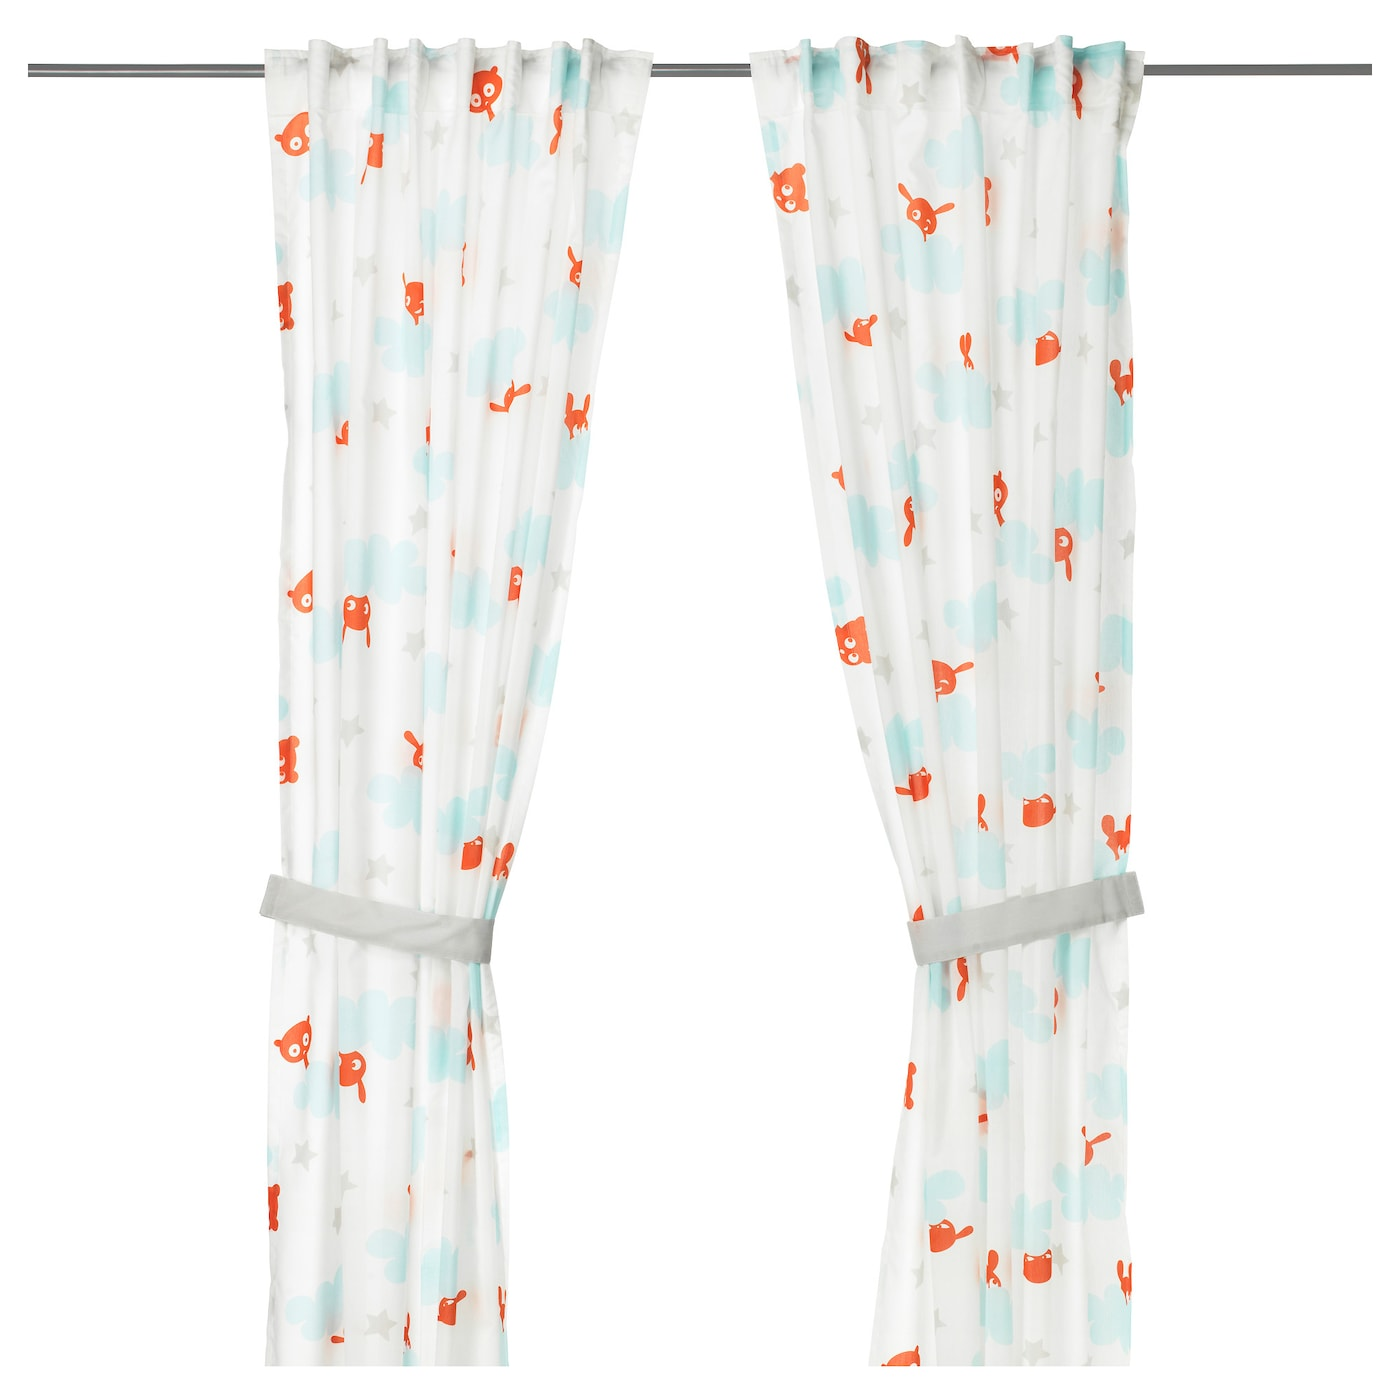 IKEA STJÄRNBILD curtains with tie-backs, 1 pair Easy to clean; machine wash, warm (40°C).